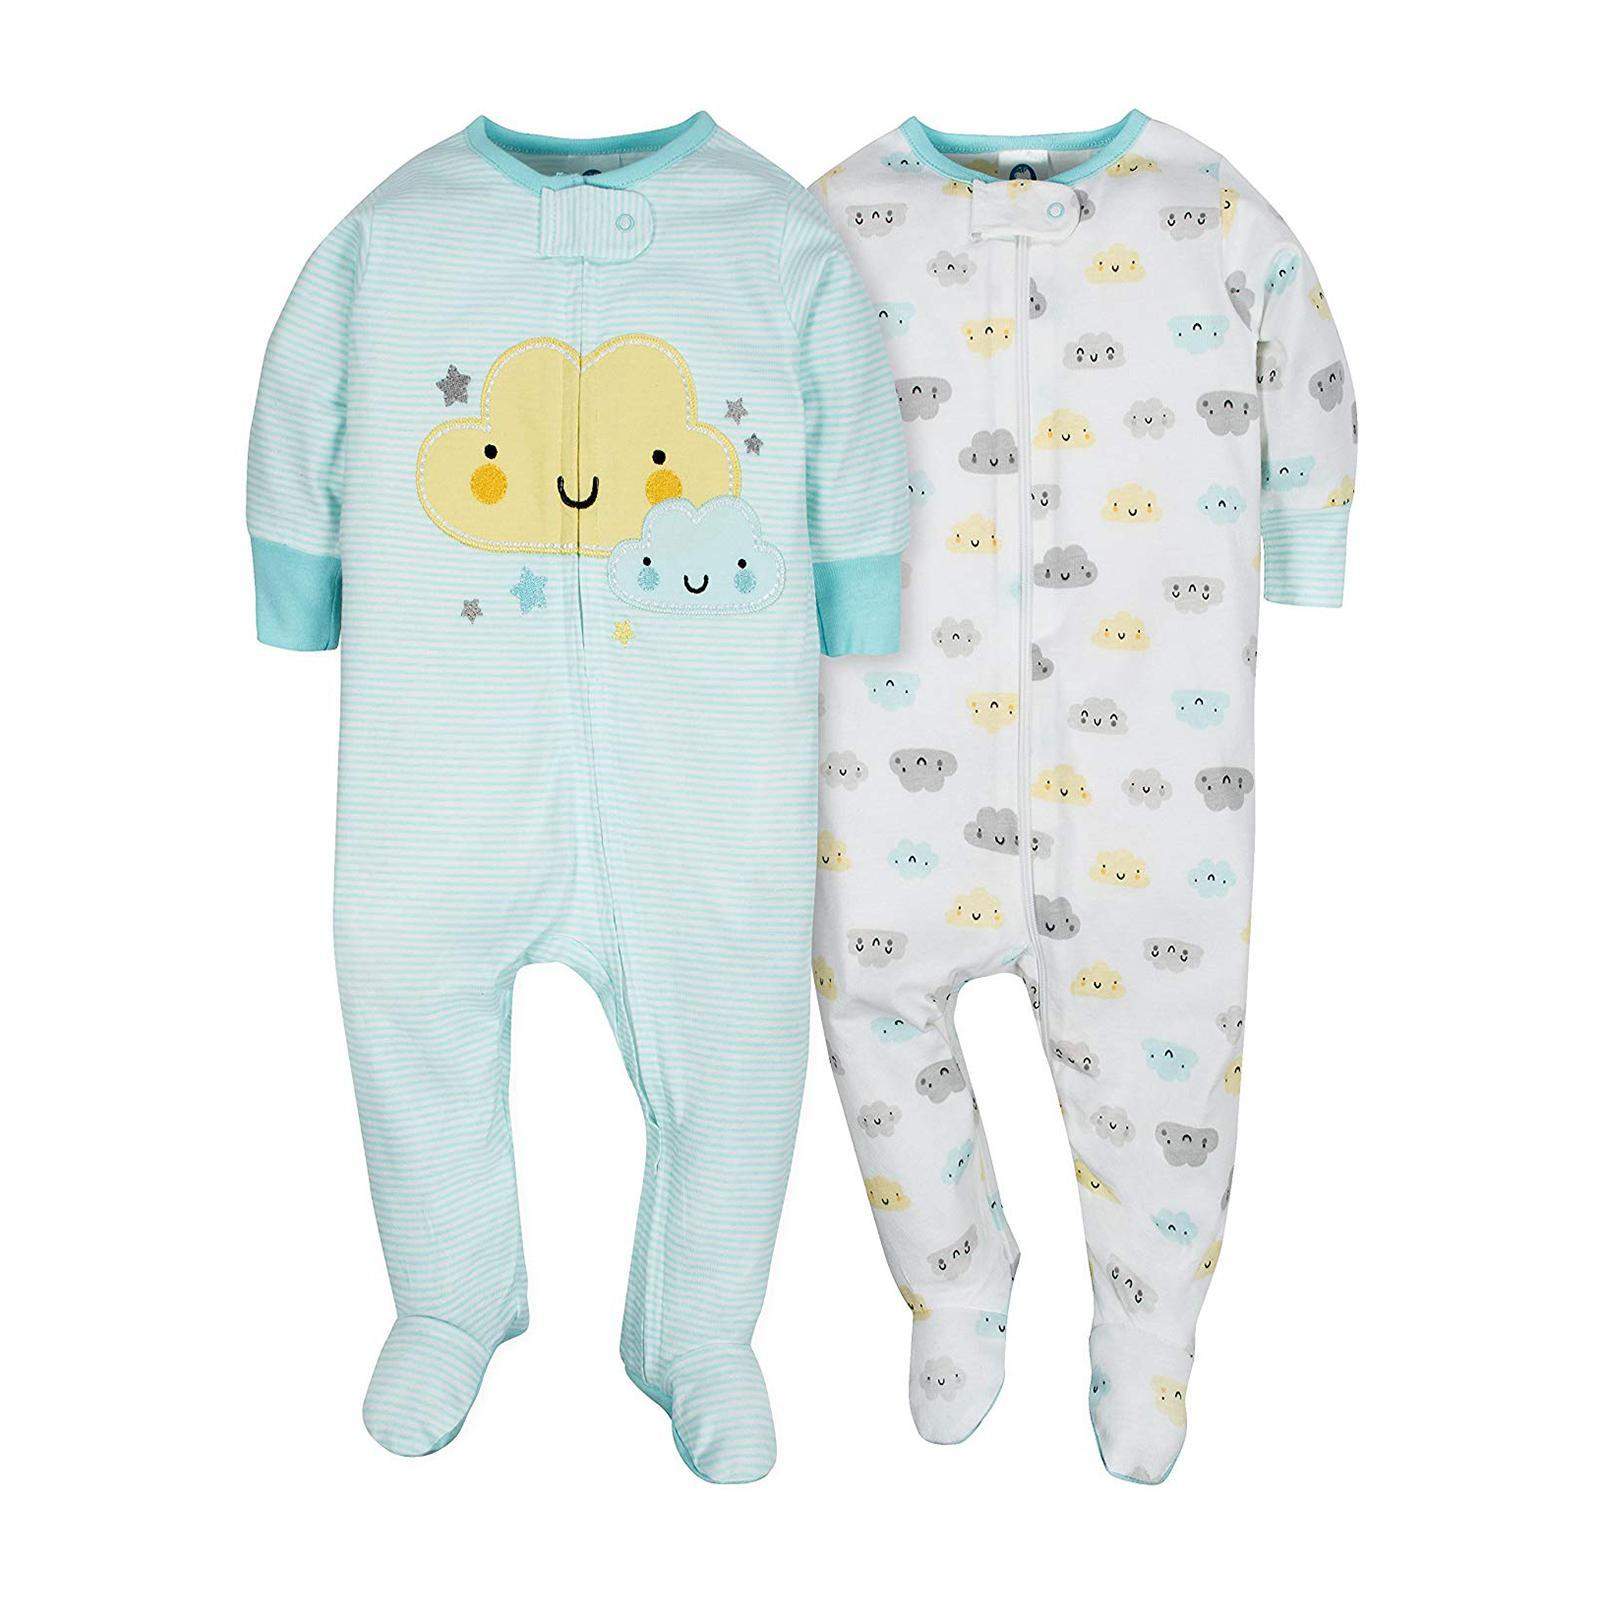 87a7431335ea Buy Cute Newborn Baby Clothes | Redmart at Lazada